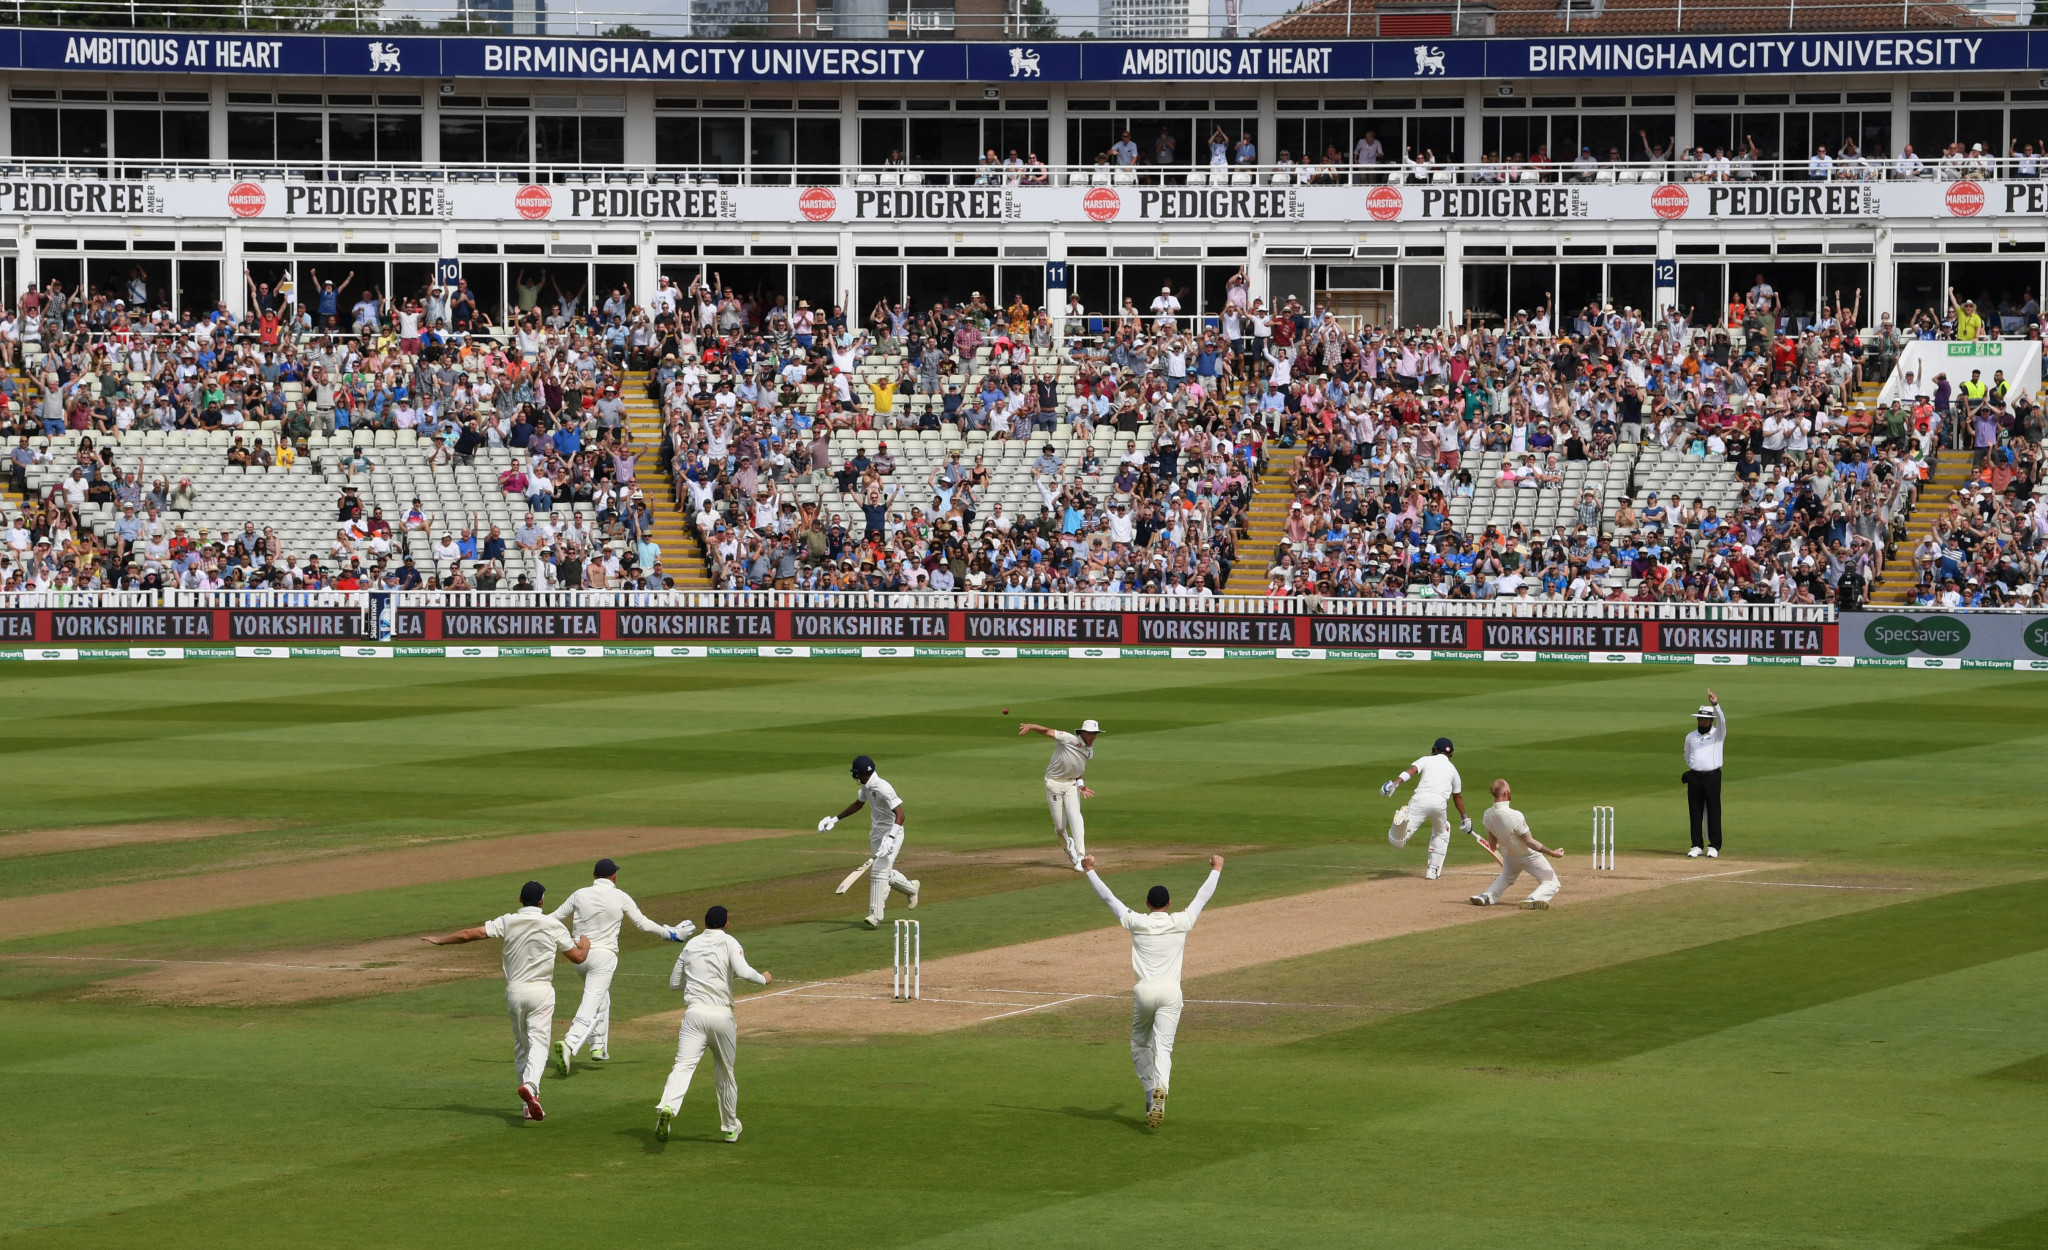 England and India played out a thrilling first Test at Edgbaston ©Getty Images